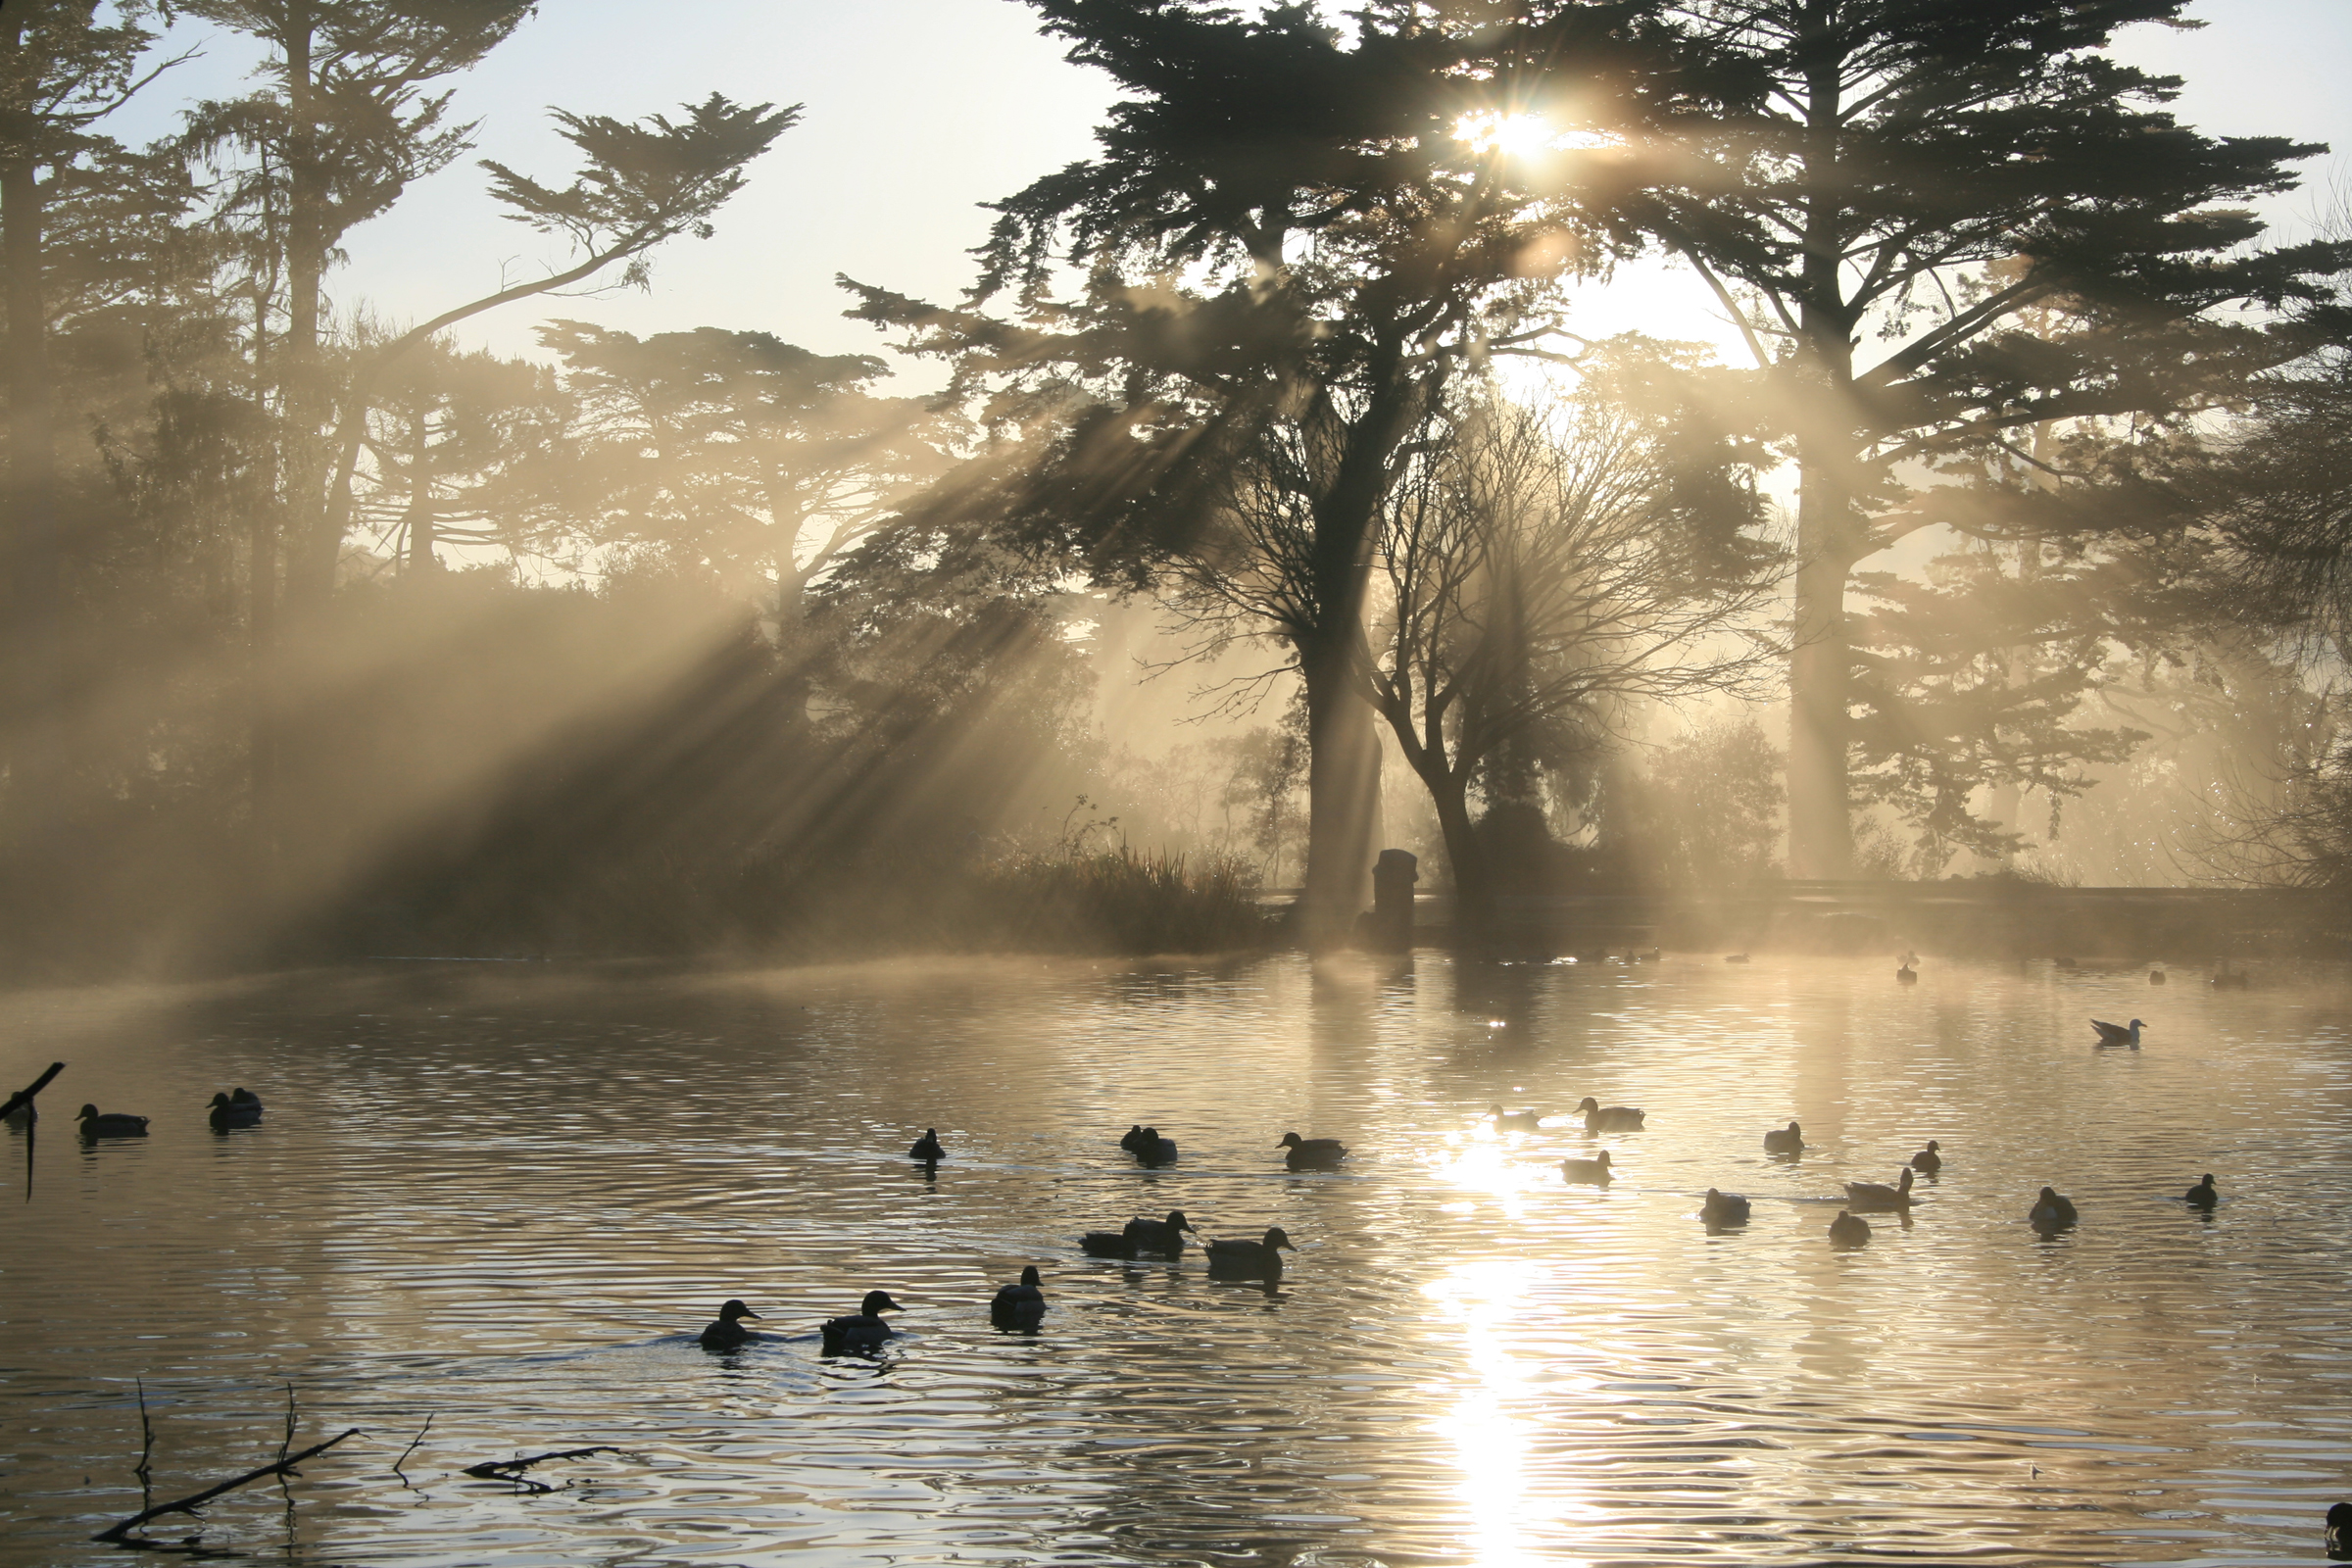 Residents enjoy the plentiful hiking trails, lakes, picnic spots and renowned museums that are sprinkled throughout Golden Gate Park.